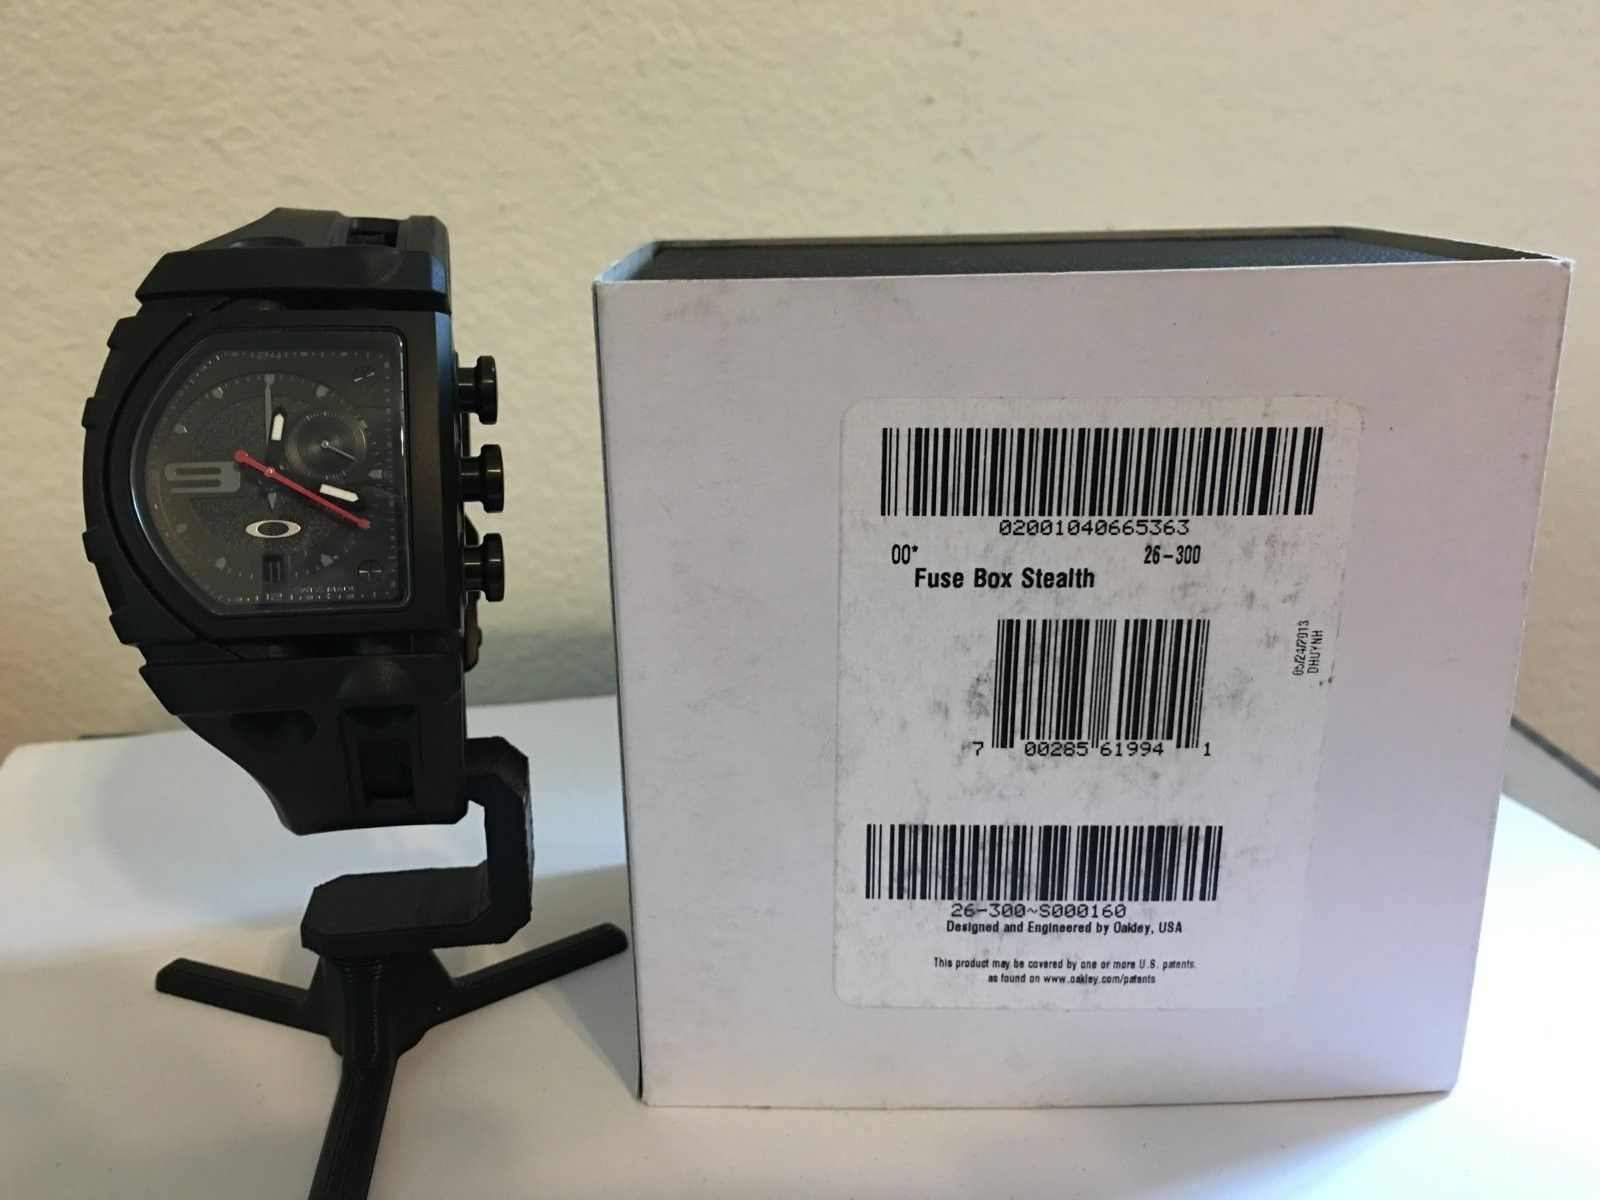 Oakley Fuse Box Stealth Electrical Wiring Diagrams Manual Sold Fusebox Bnib Forum Livestrong Titanium Watch